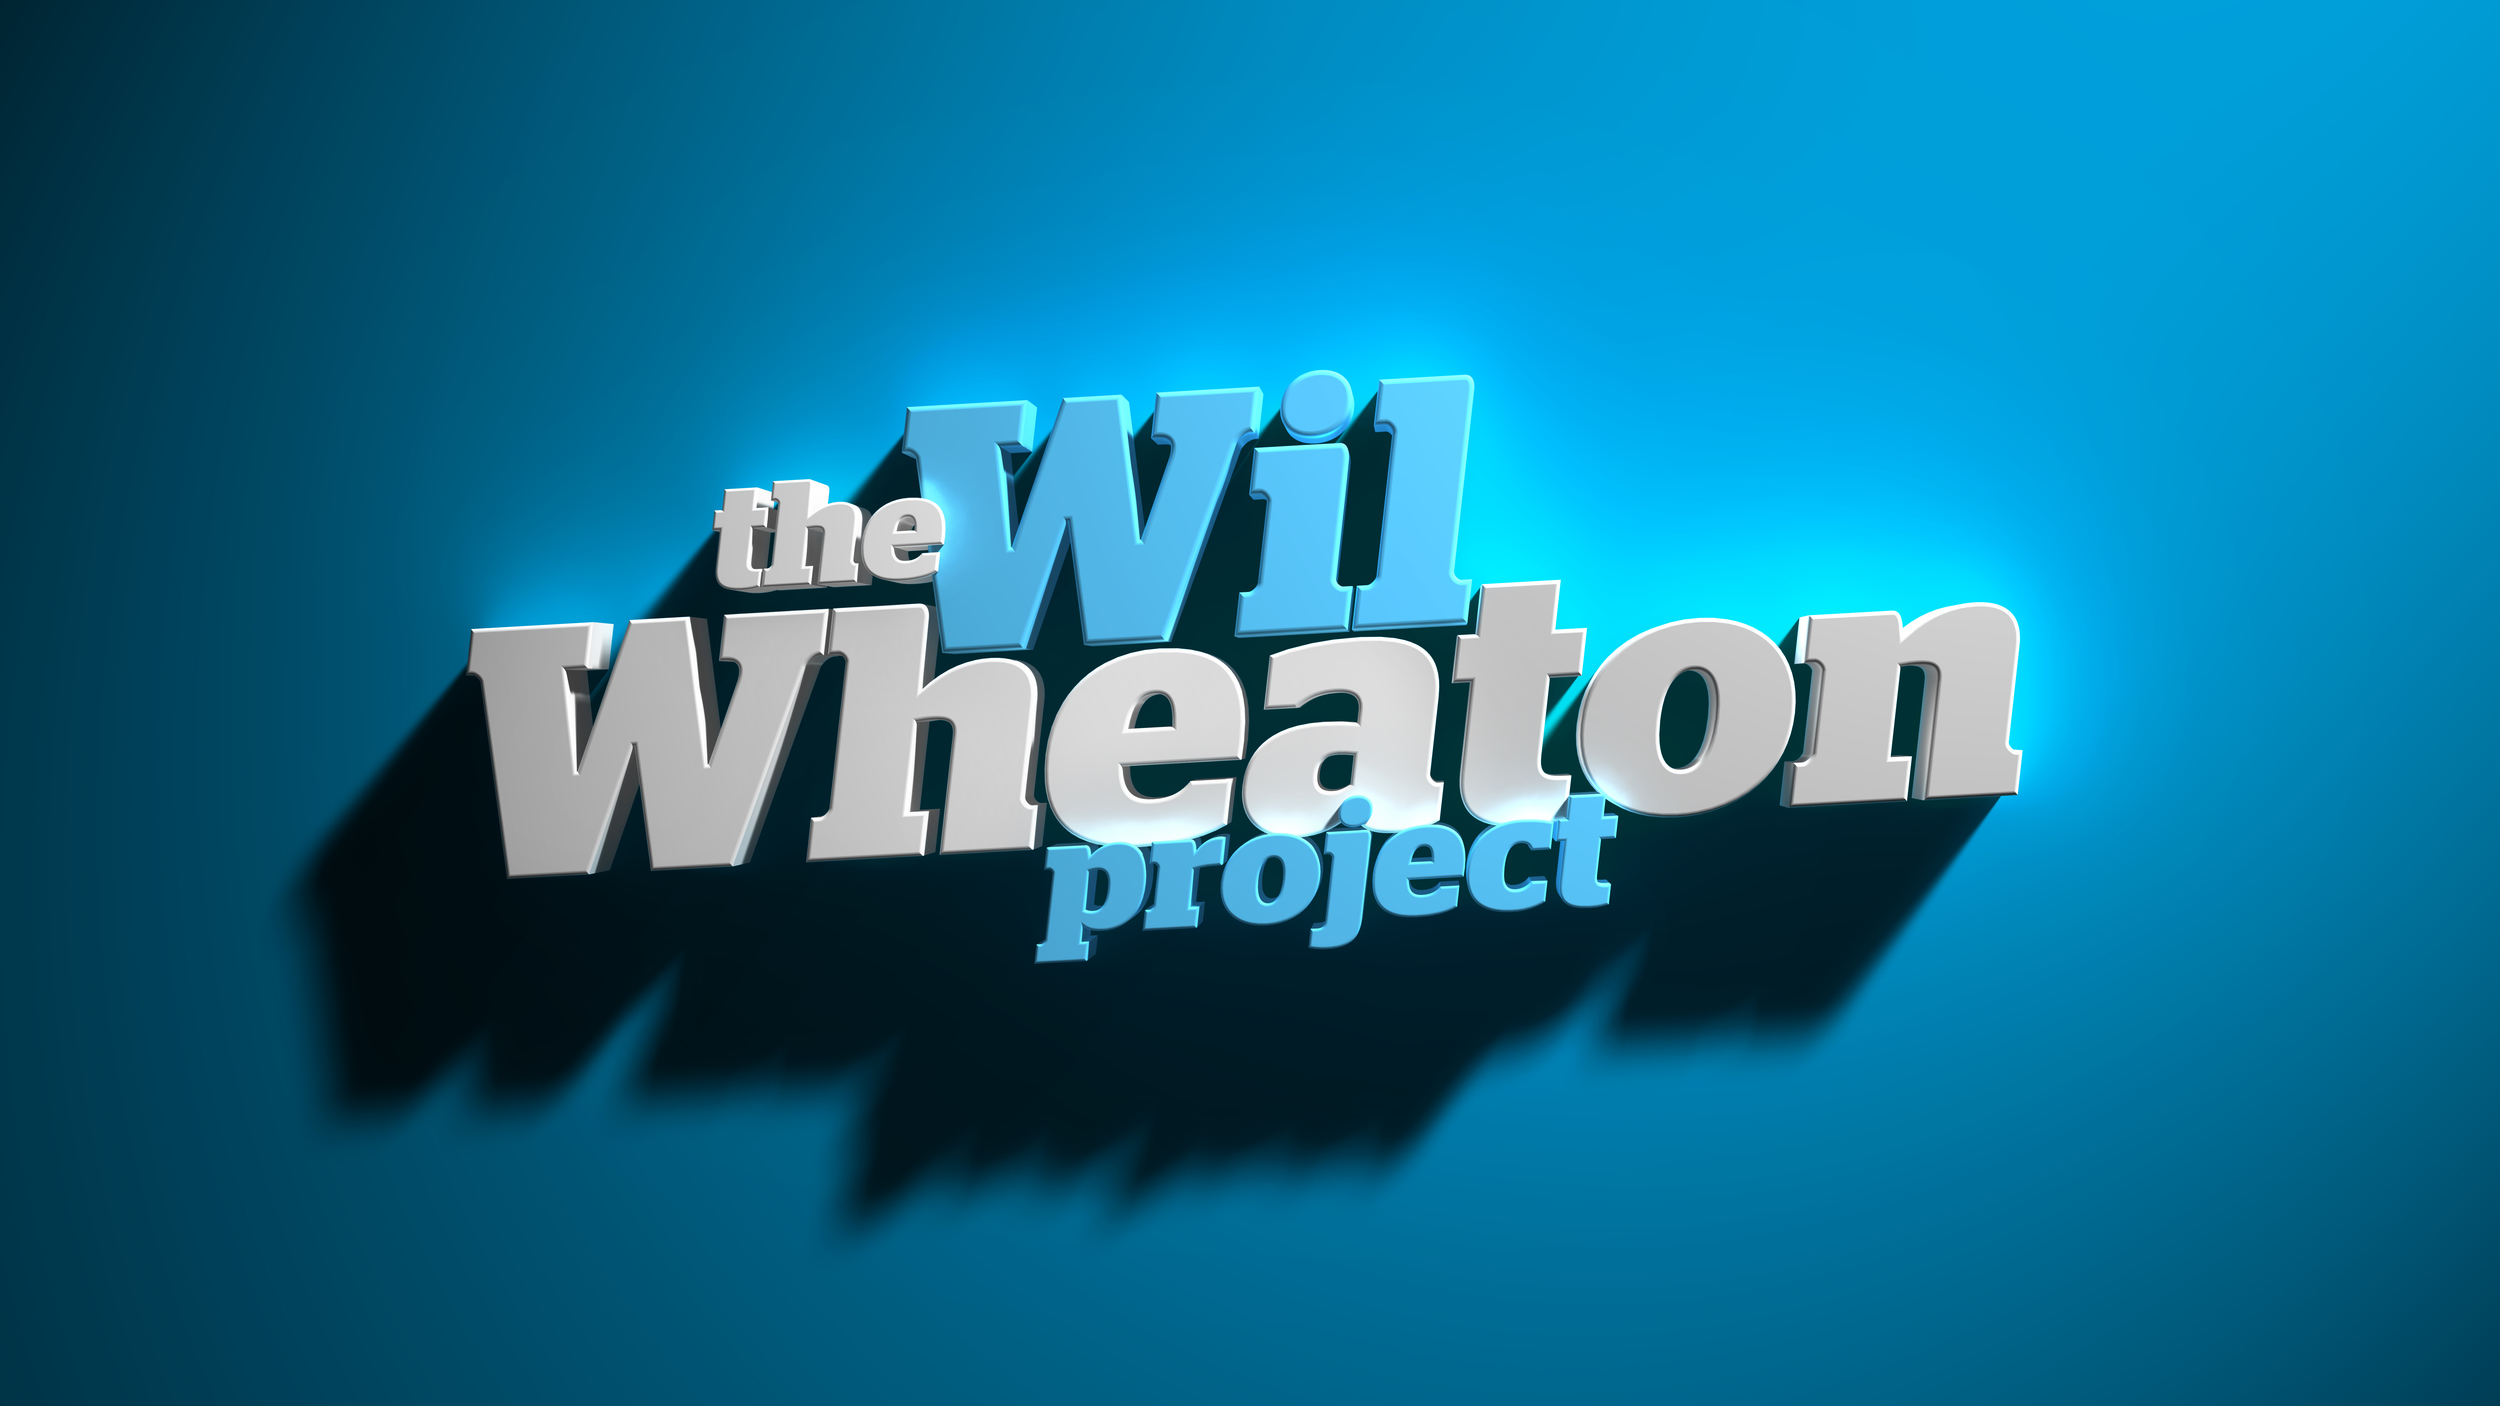 The Wil  Wheaton Project | Scfy